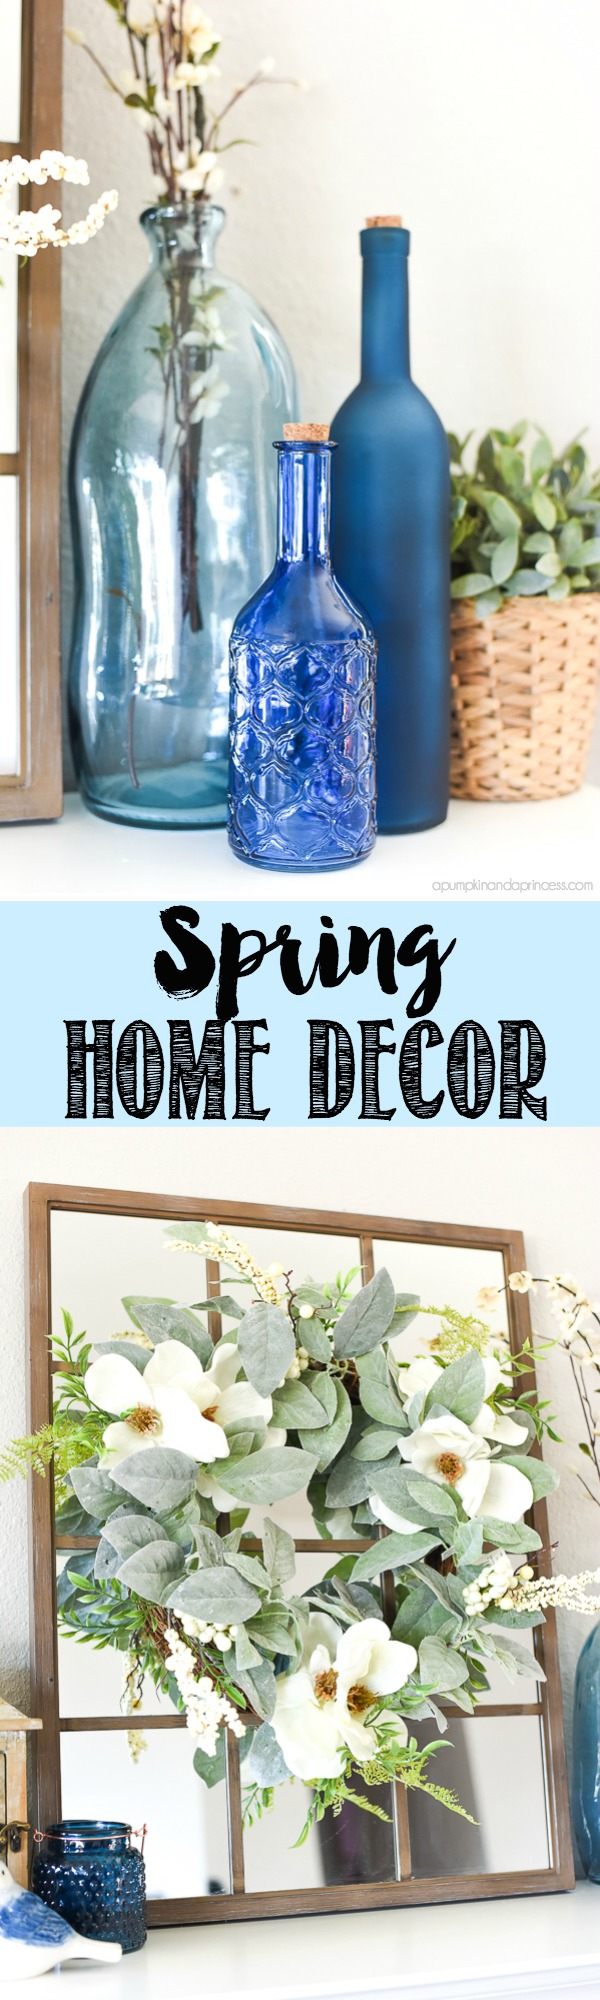 Spring Home Decor - update your home with neutrals and shades of blue vases for Spring!